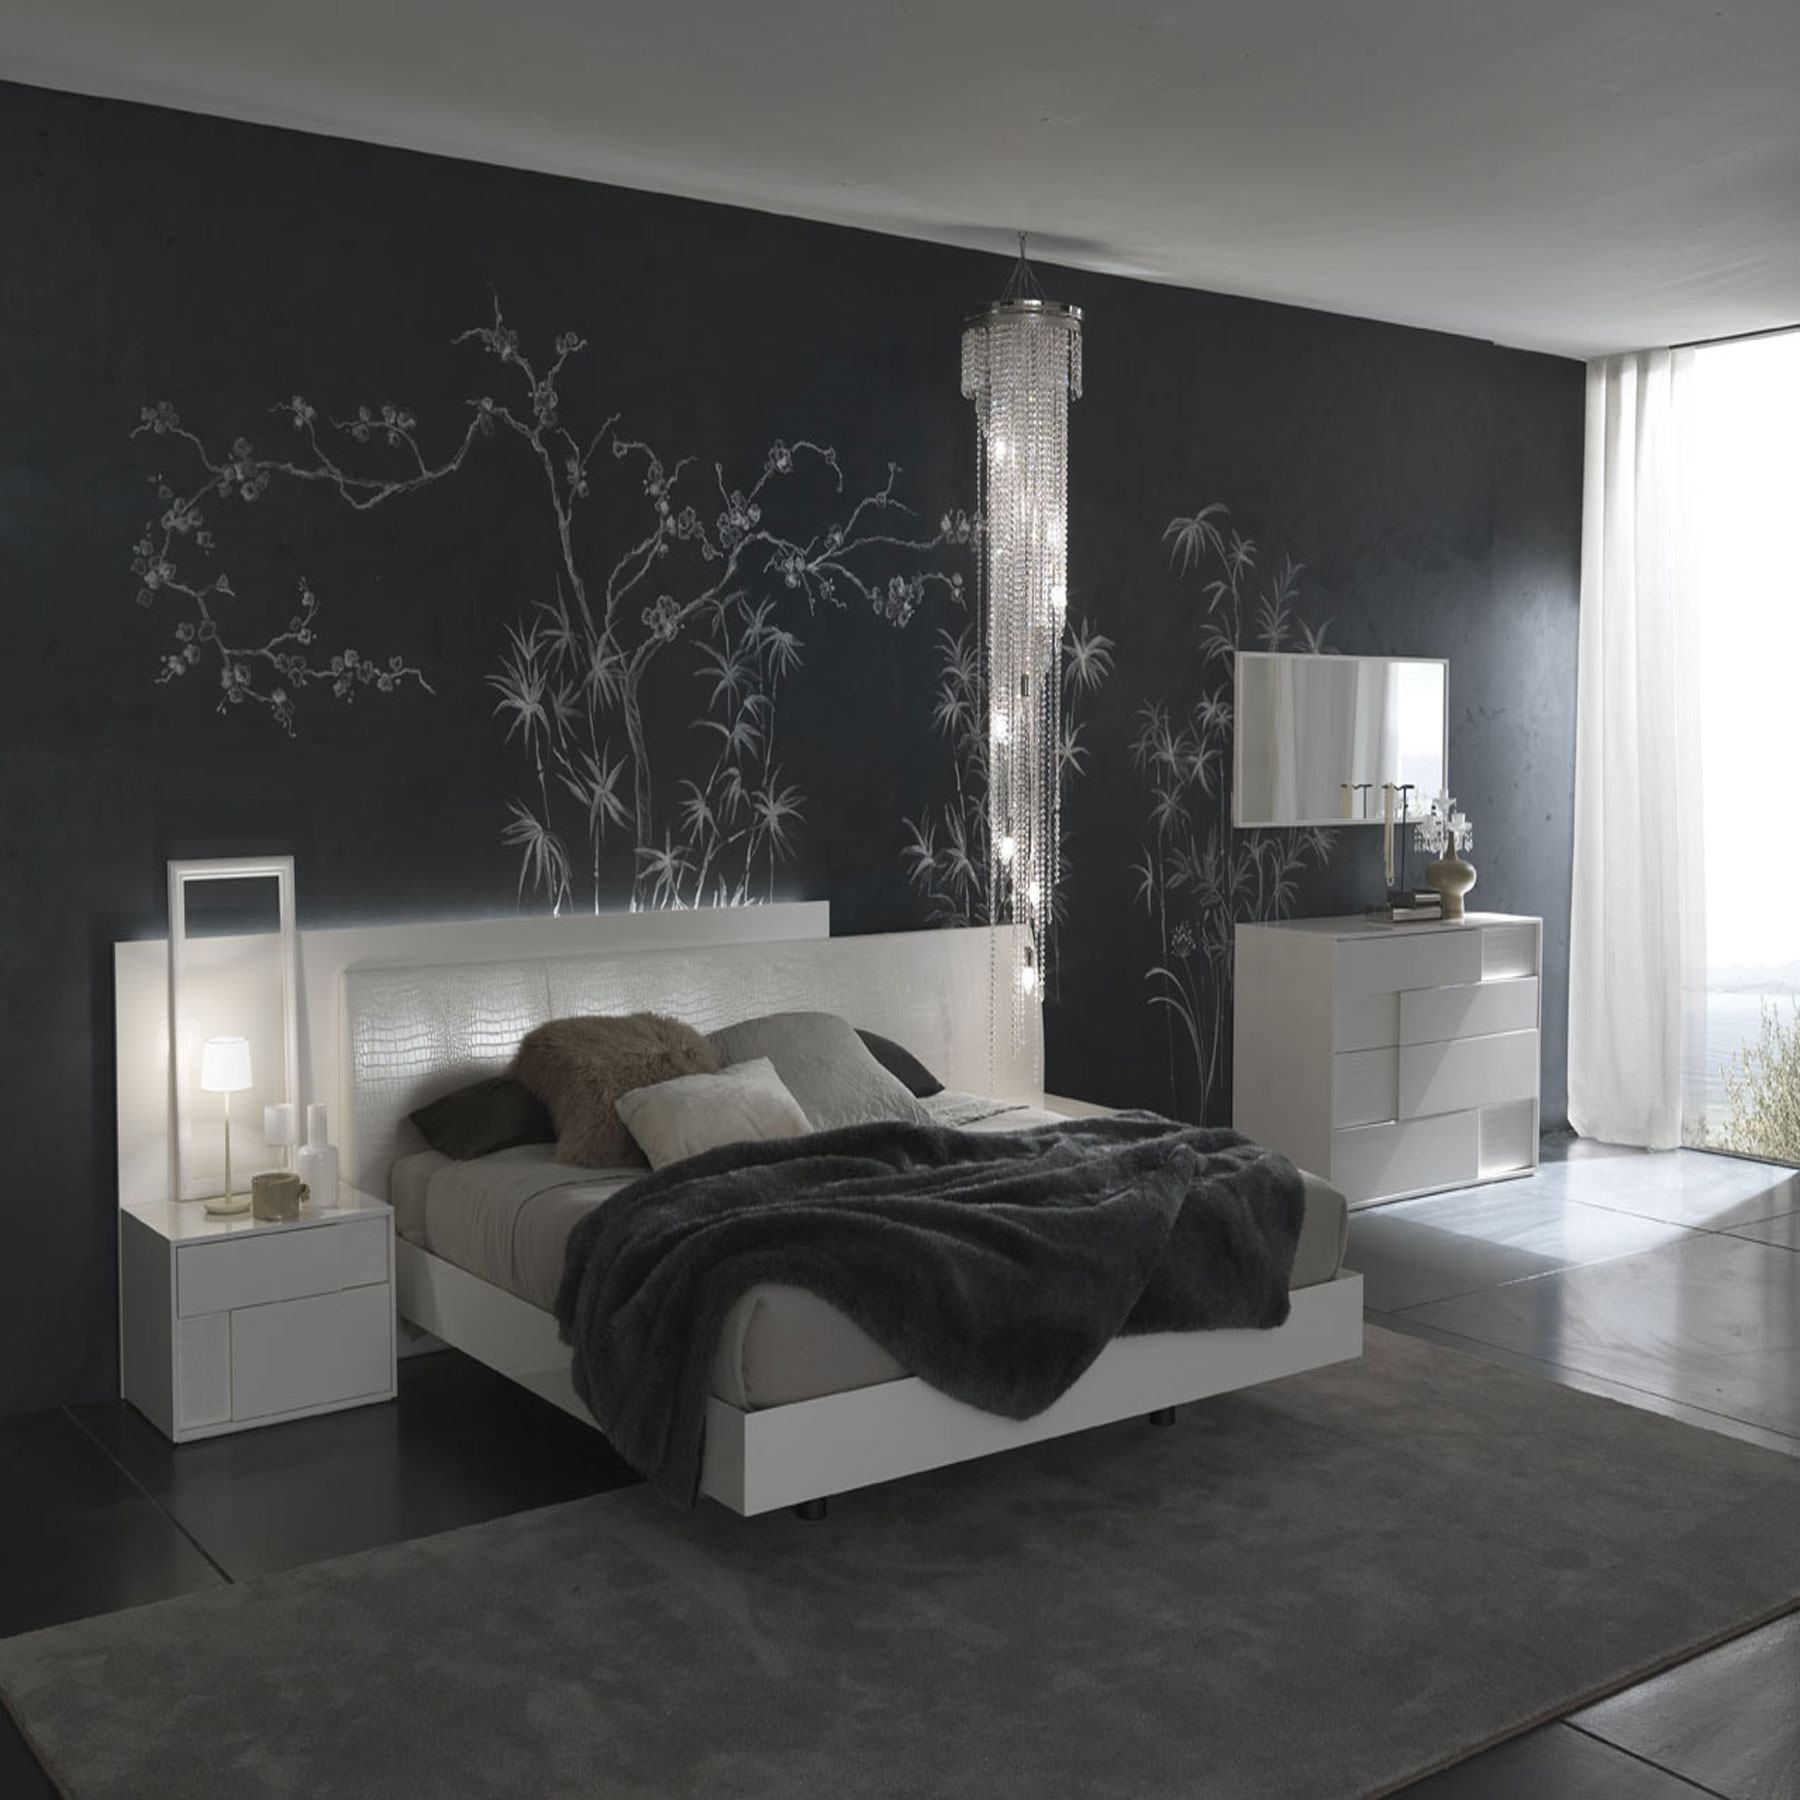 Bed Decorations: 50 Best Bedrooms With White Furniture For 2020